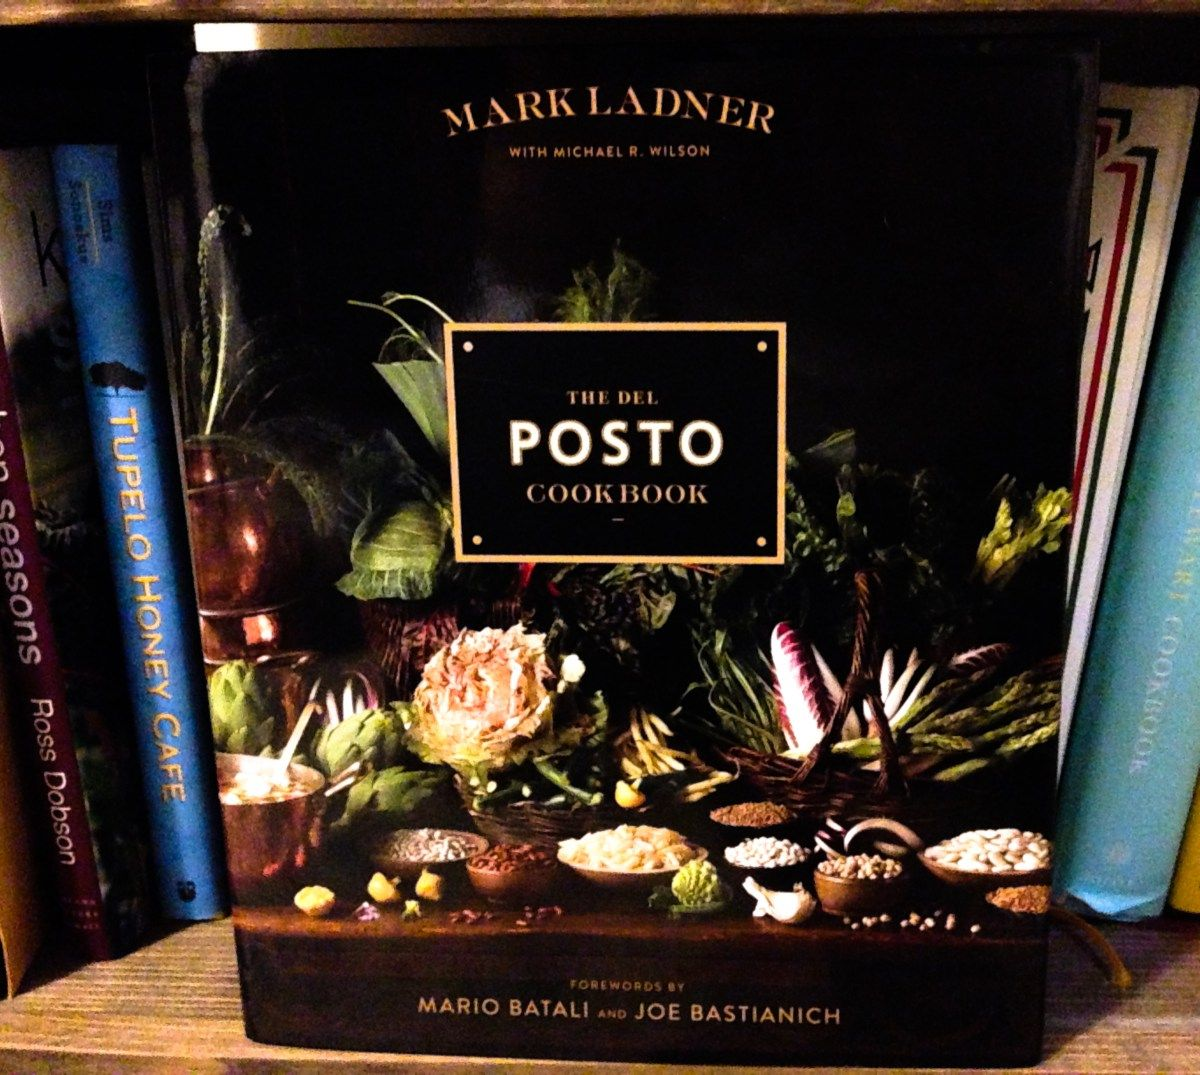 A Cookbook Review: The Del Posto Cookbook